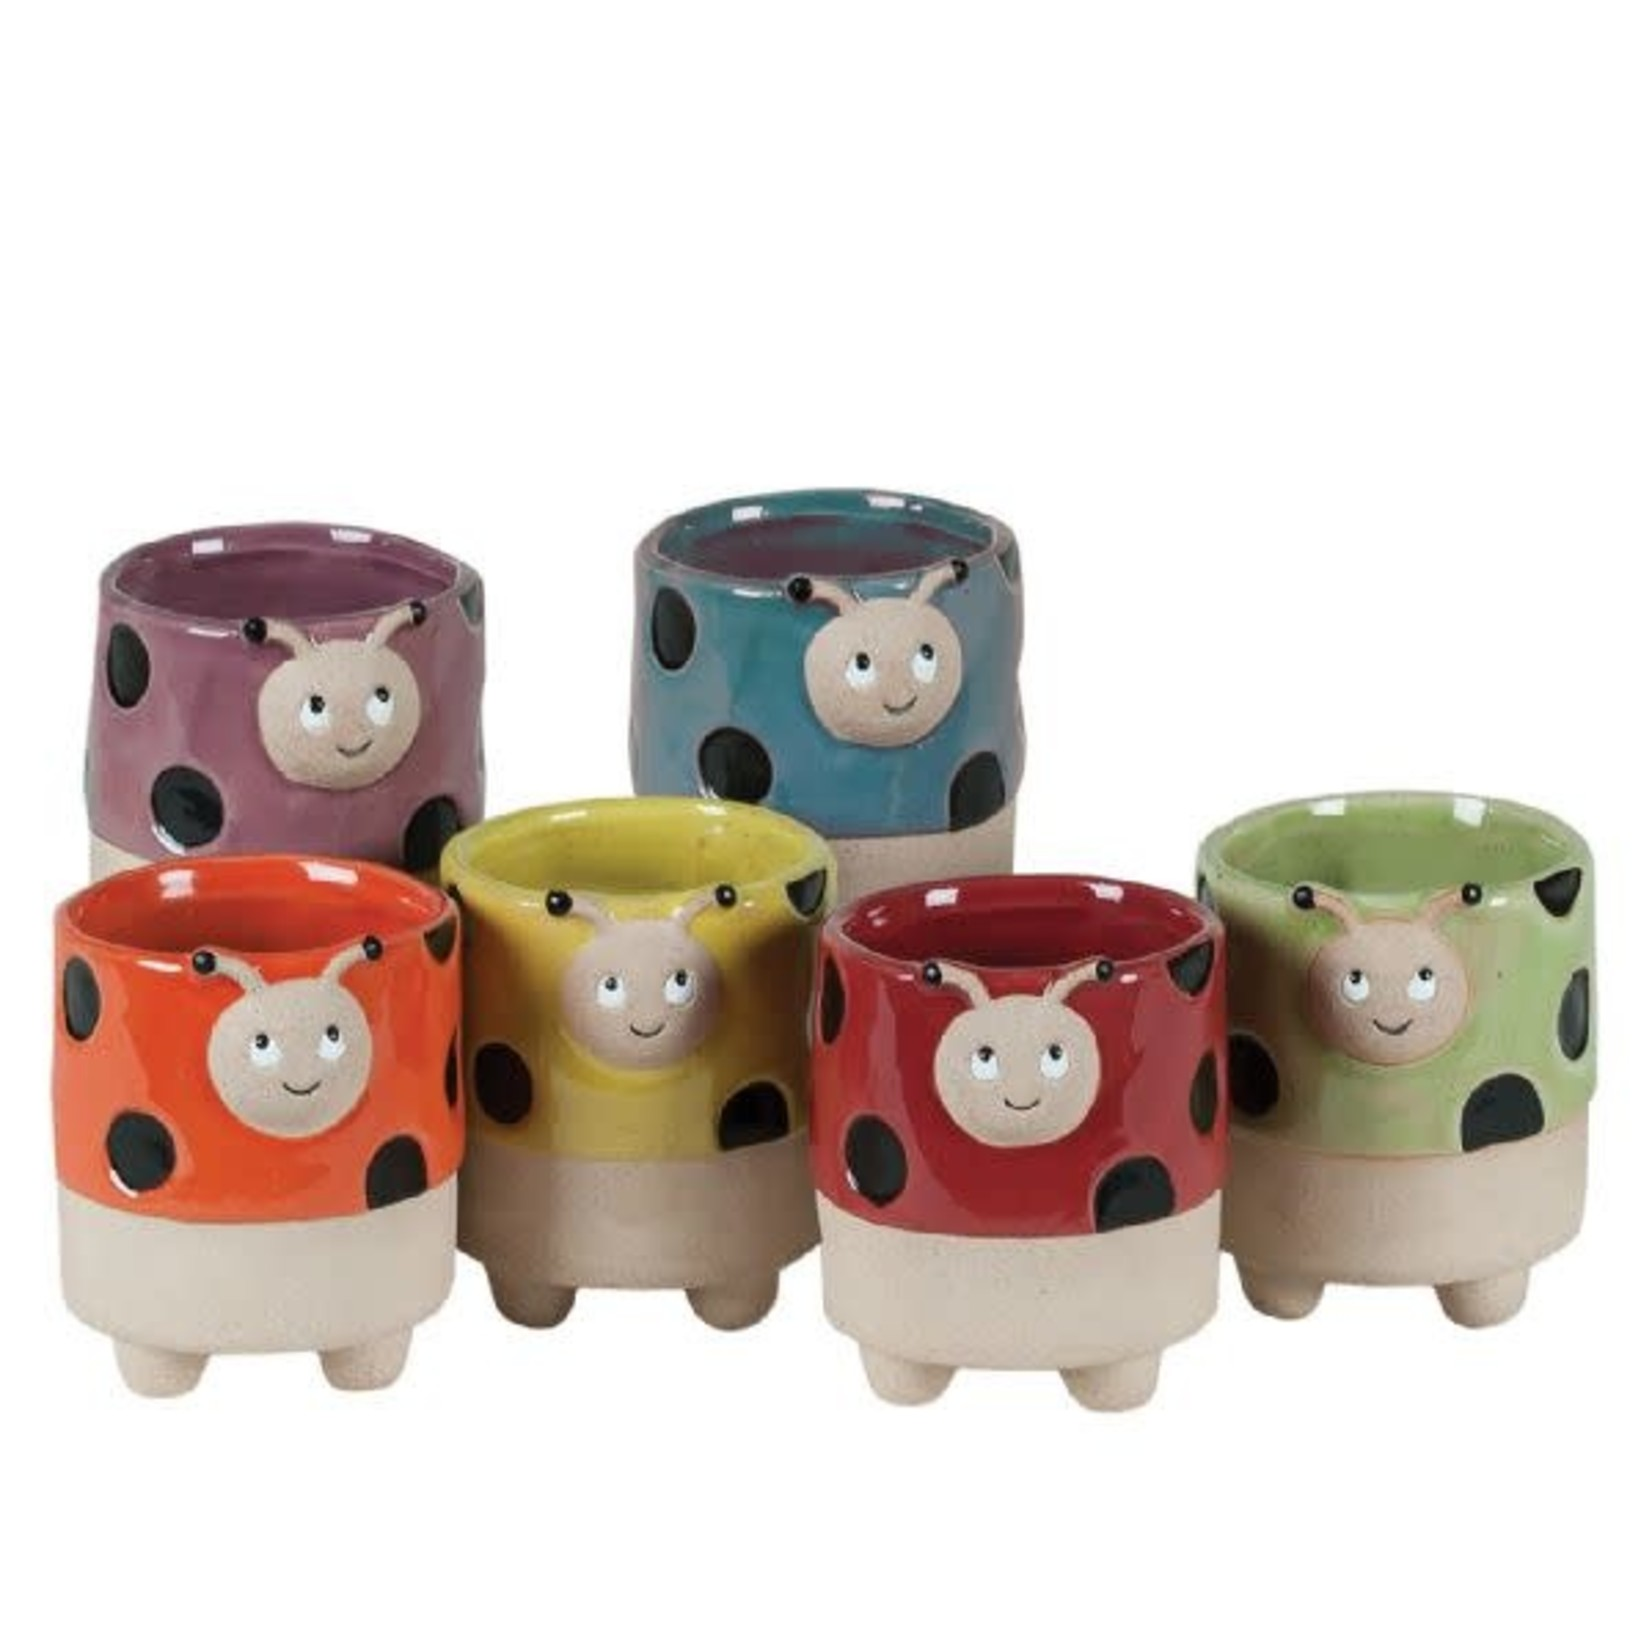 """3.5''H X 3"""" ROUND LADYBUG POTTERY ASSORTED STYLES PER BOX. PACKED 24"""